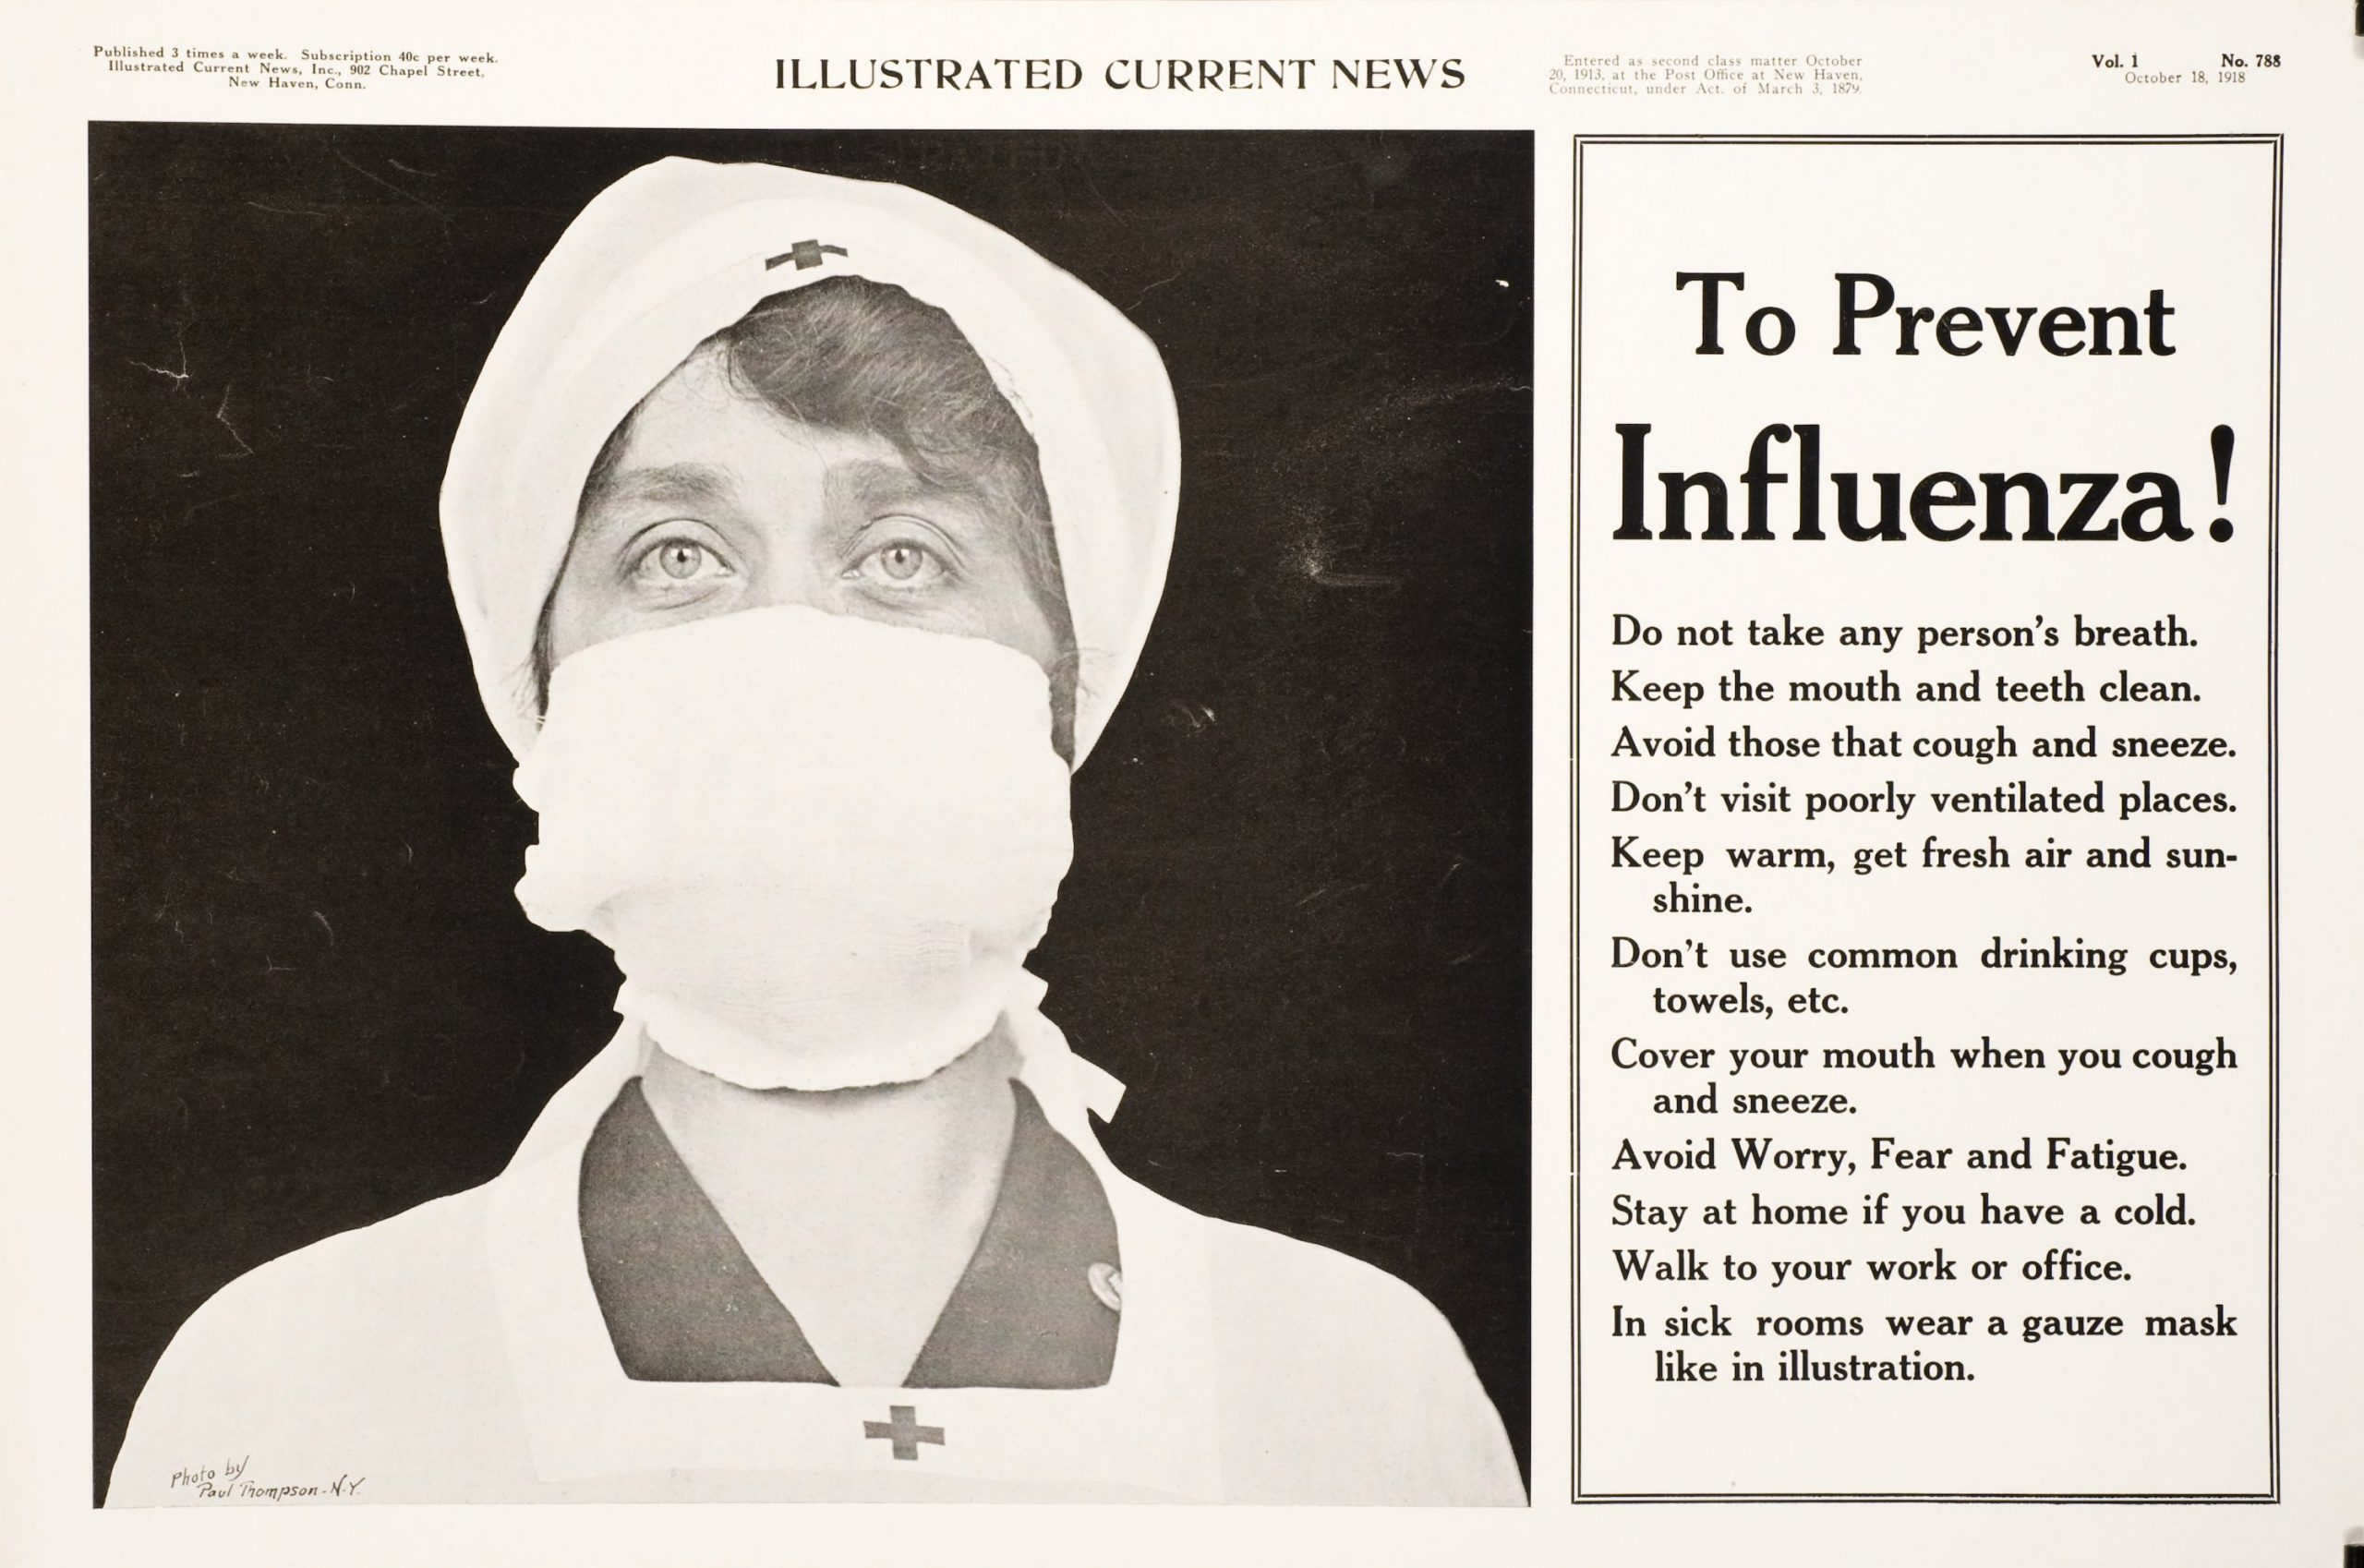 The Mask and The Rules made their debut during the Spanish Flu pandemic of 1918. People accepted the recommendations for hygeine and caution as sensible, but many physicians doubted masks did any good. Opinion is still divided.